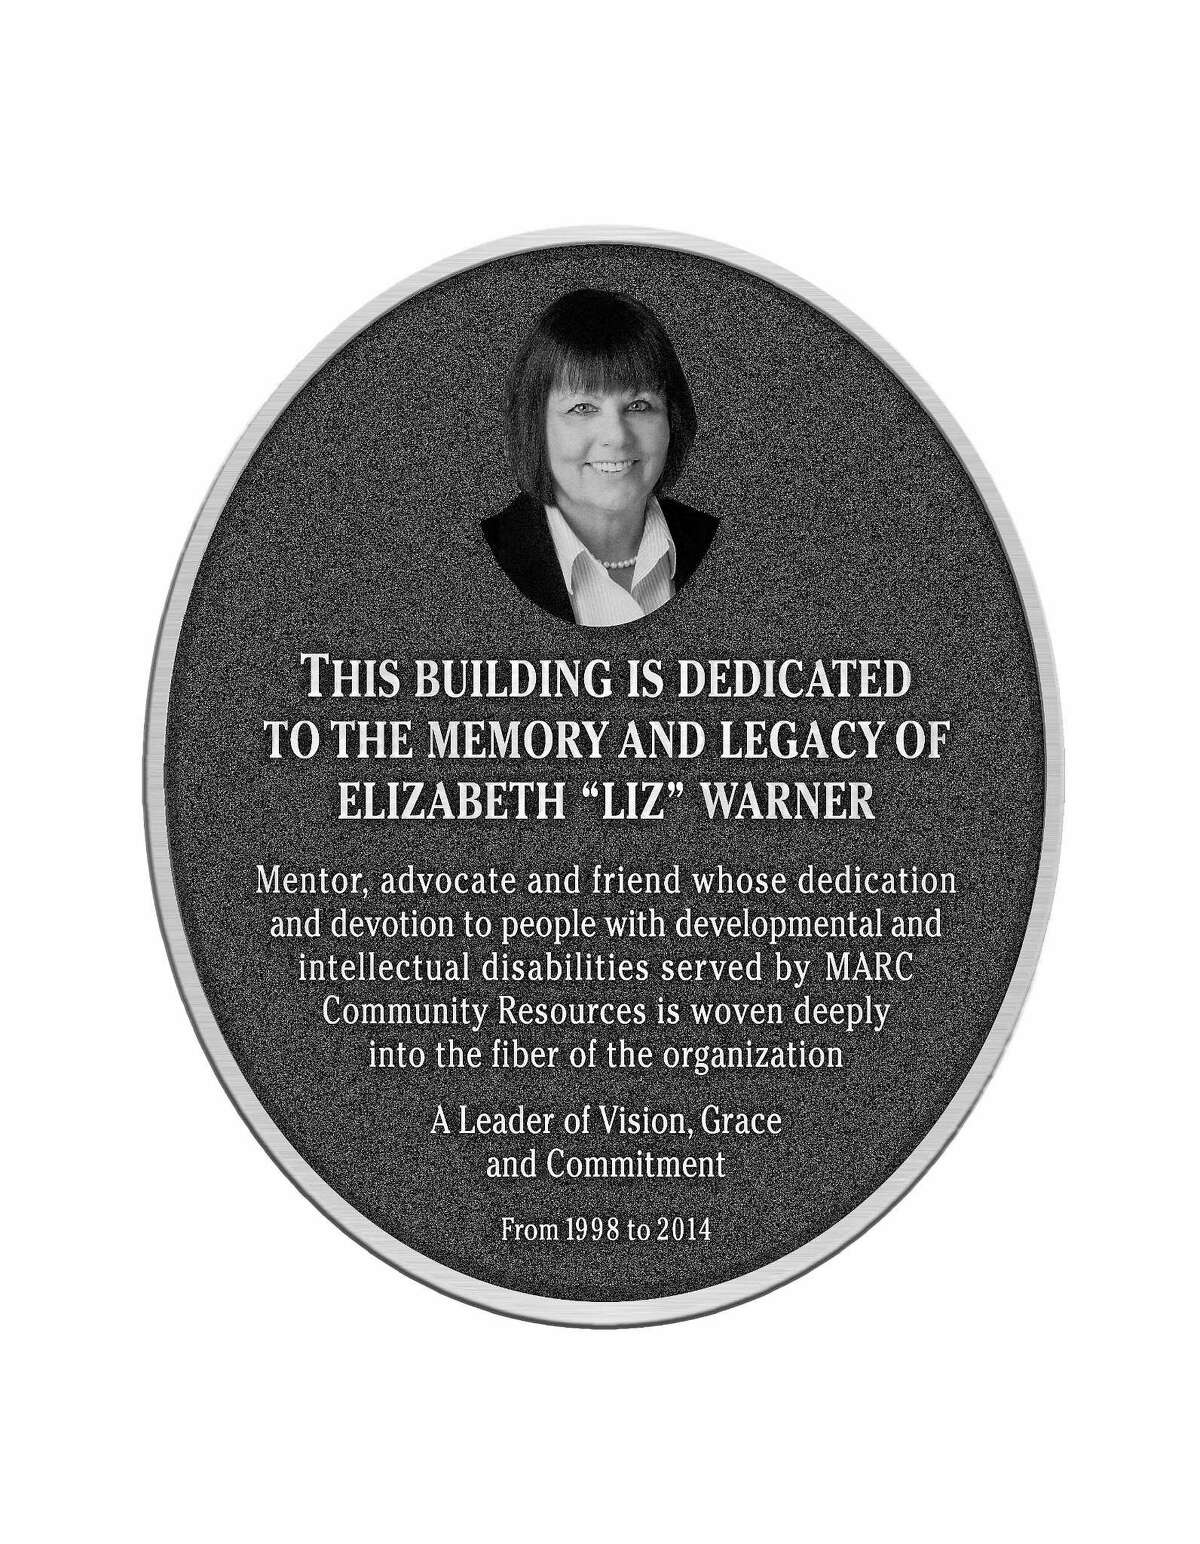 President and chief executive officer of MARC Community Resources in Middletown served the organization for more than 26 years before her death late last year.